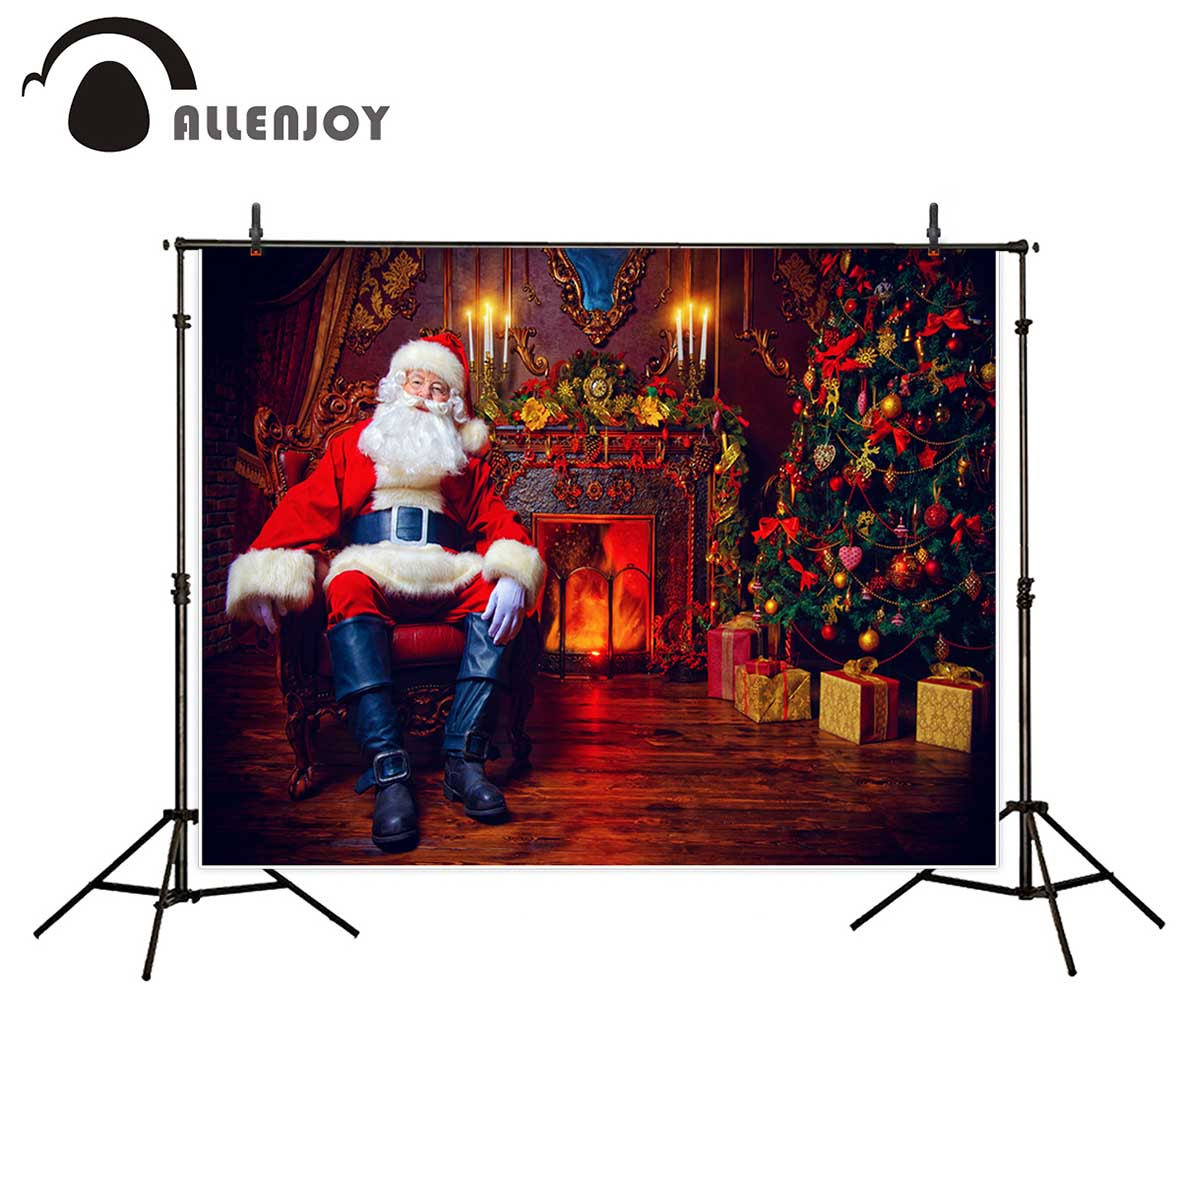 Allenjoy photography background santa claus indoor fireplace christmas tree resting armchair backdrop Photo background studio